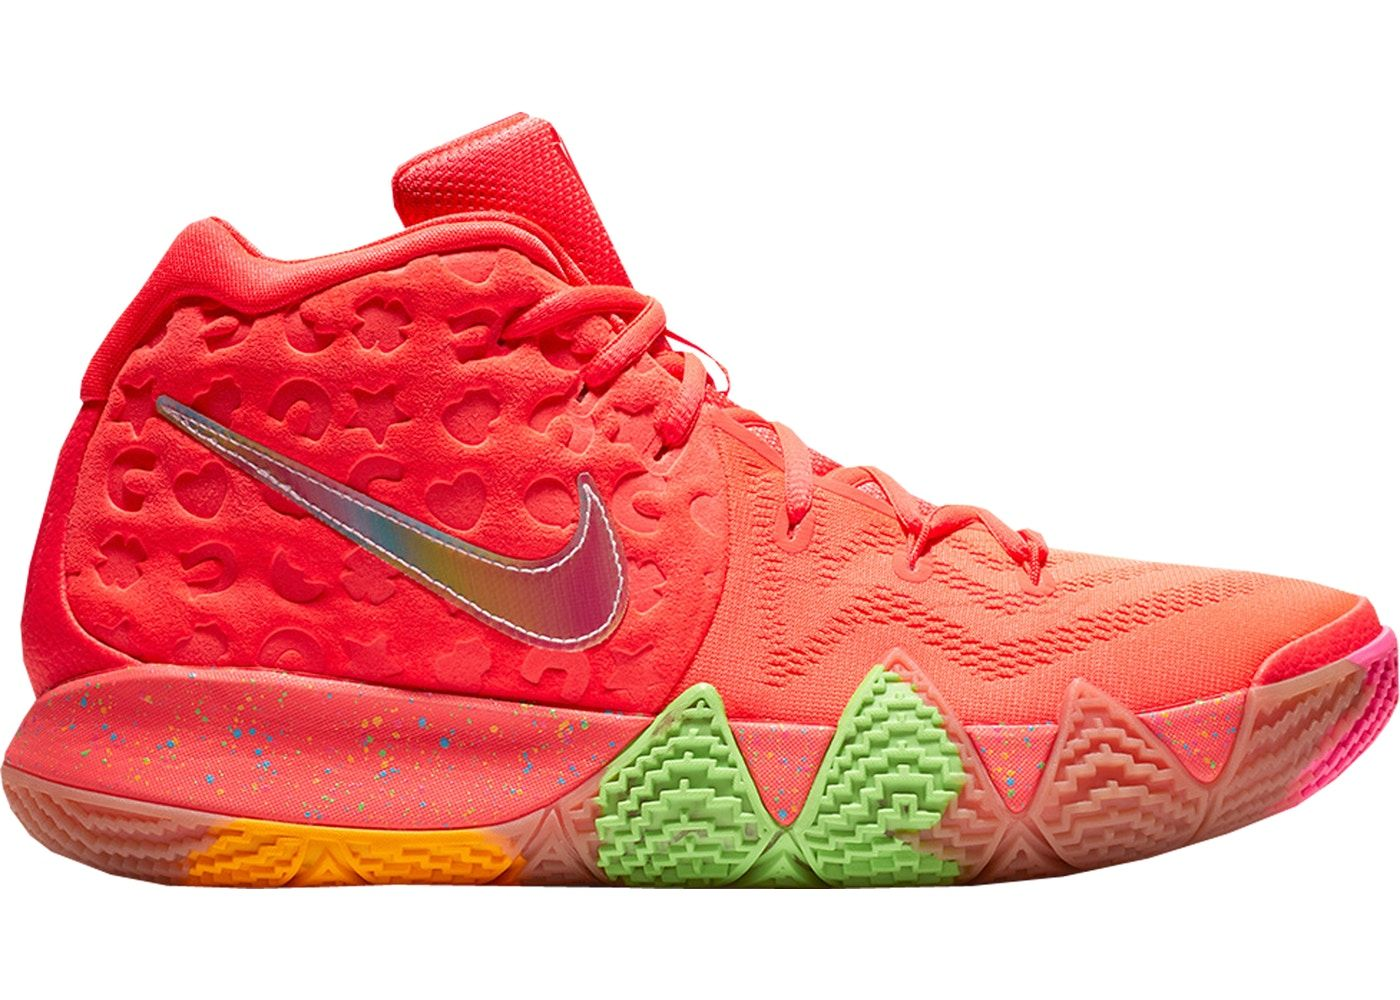 best website 32828 ba637 Nike Kyrie 4 Lucky Charms | Outfits in 2019 | Nike kyrie ...